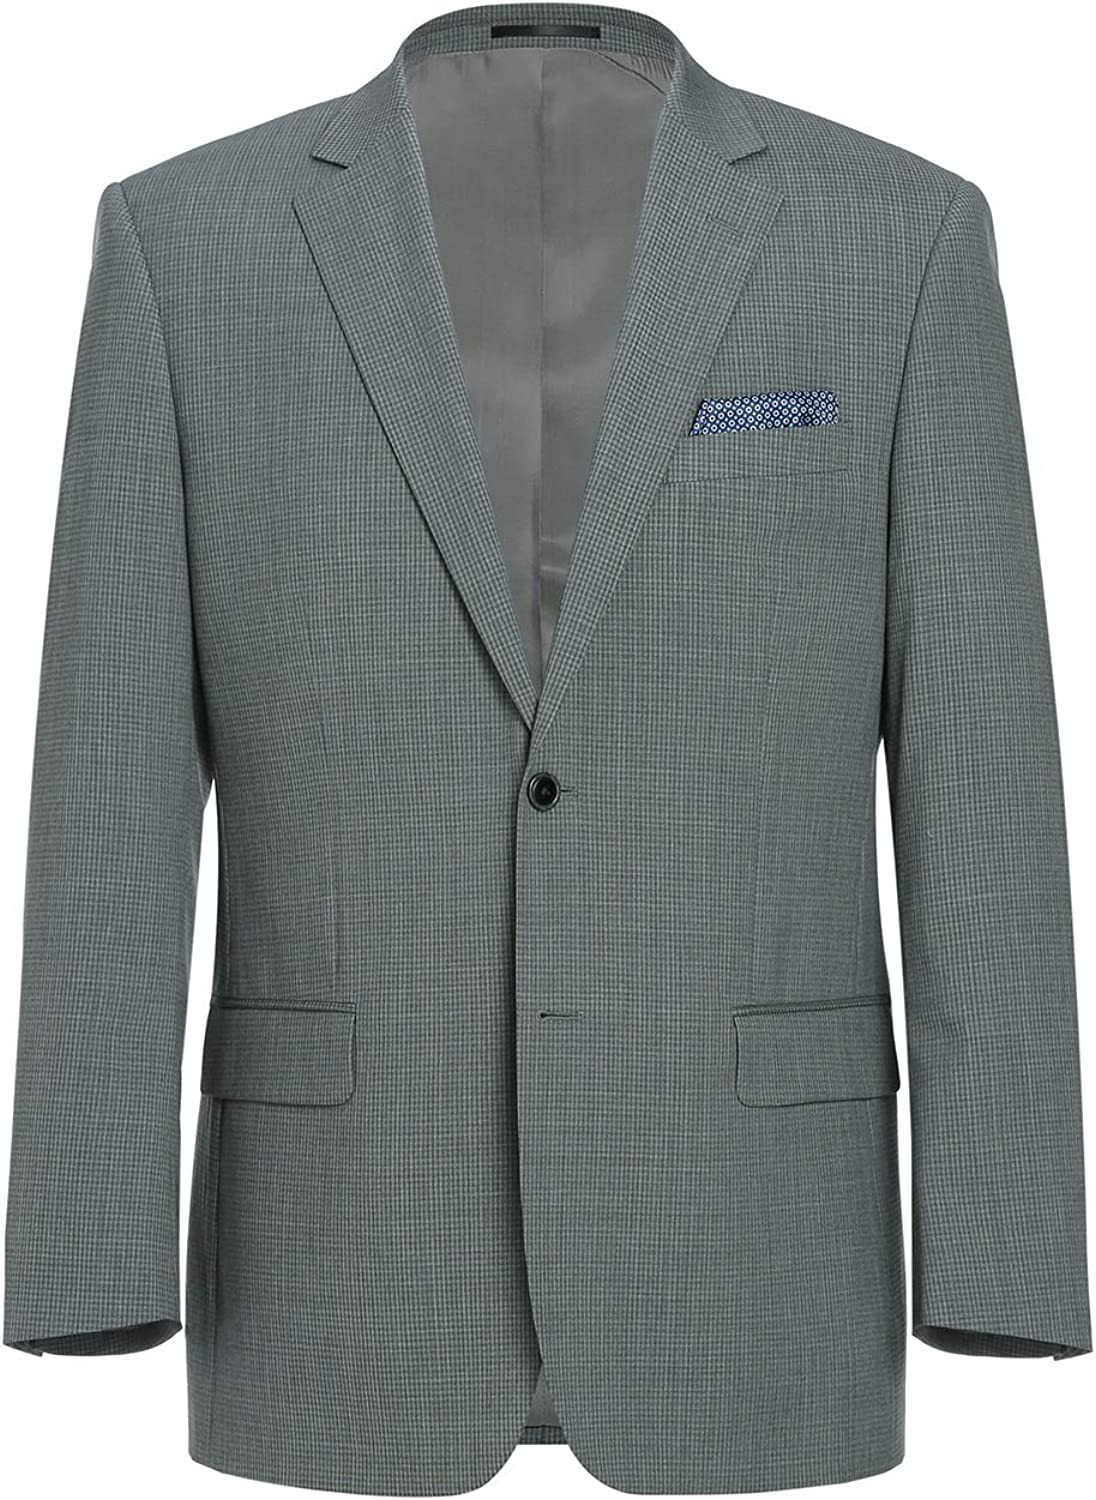 CHAMA Men's Two Buttons 100% Wool Classic Fit Casual Sports Coat Blazer Jacket